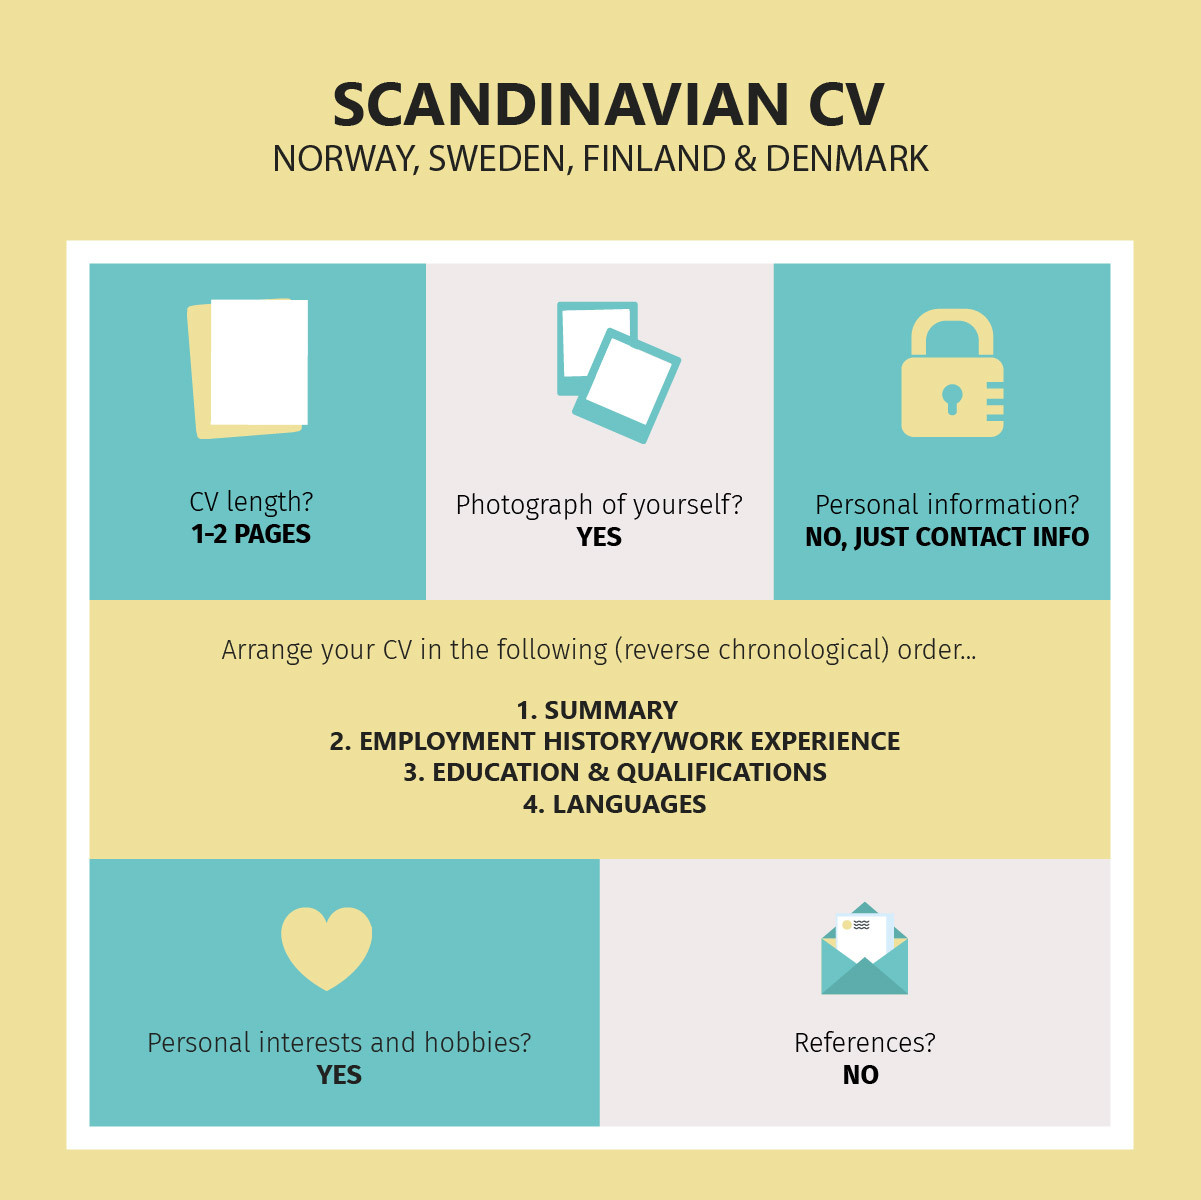 Scandinavia:  Norway, Sweden, Finland & Denmark CVs